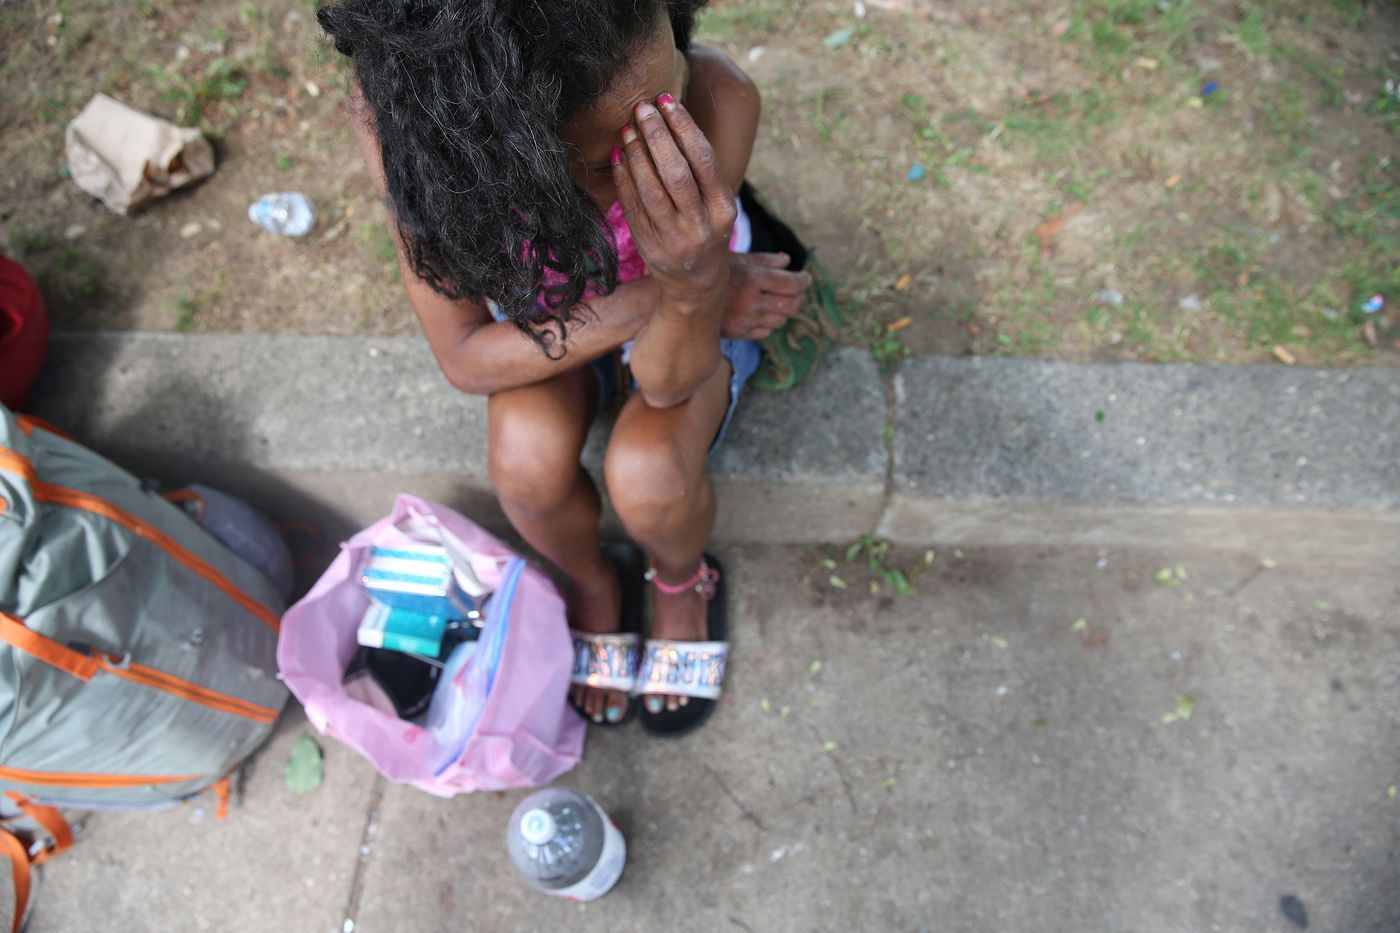 Drug overdose toll rises in Philadelphia as heroin prized for 'purity' turns out to be contaminated